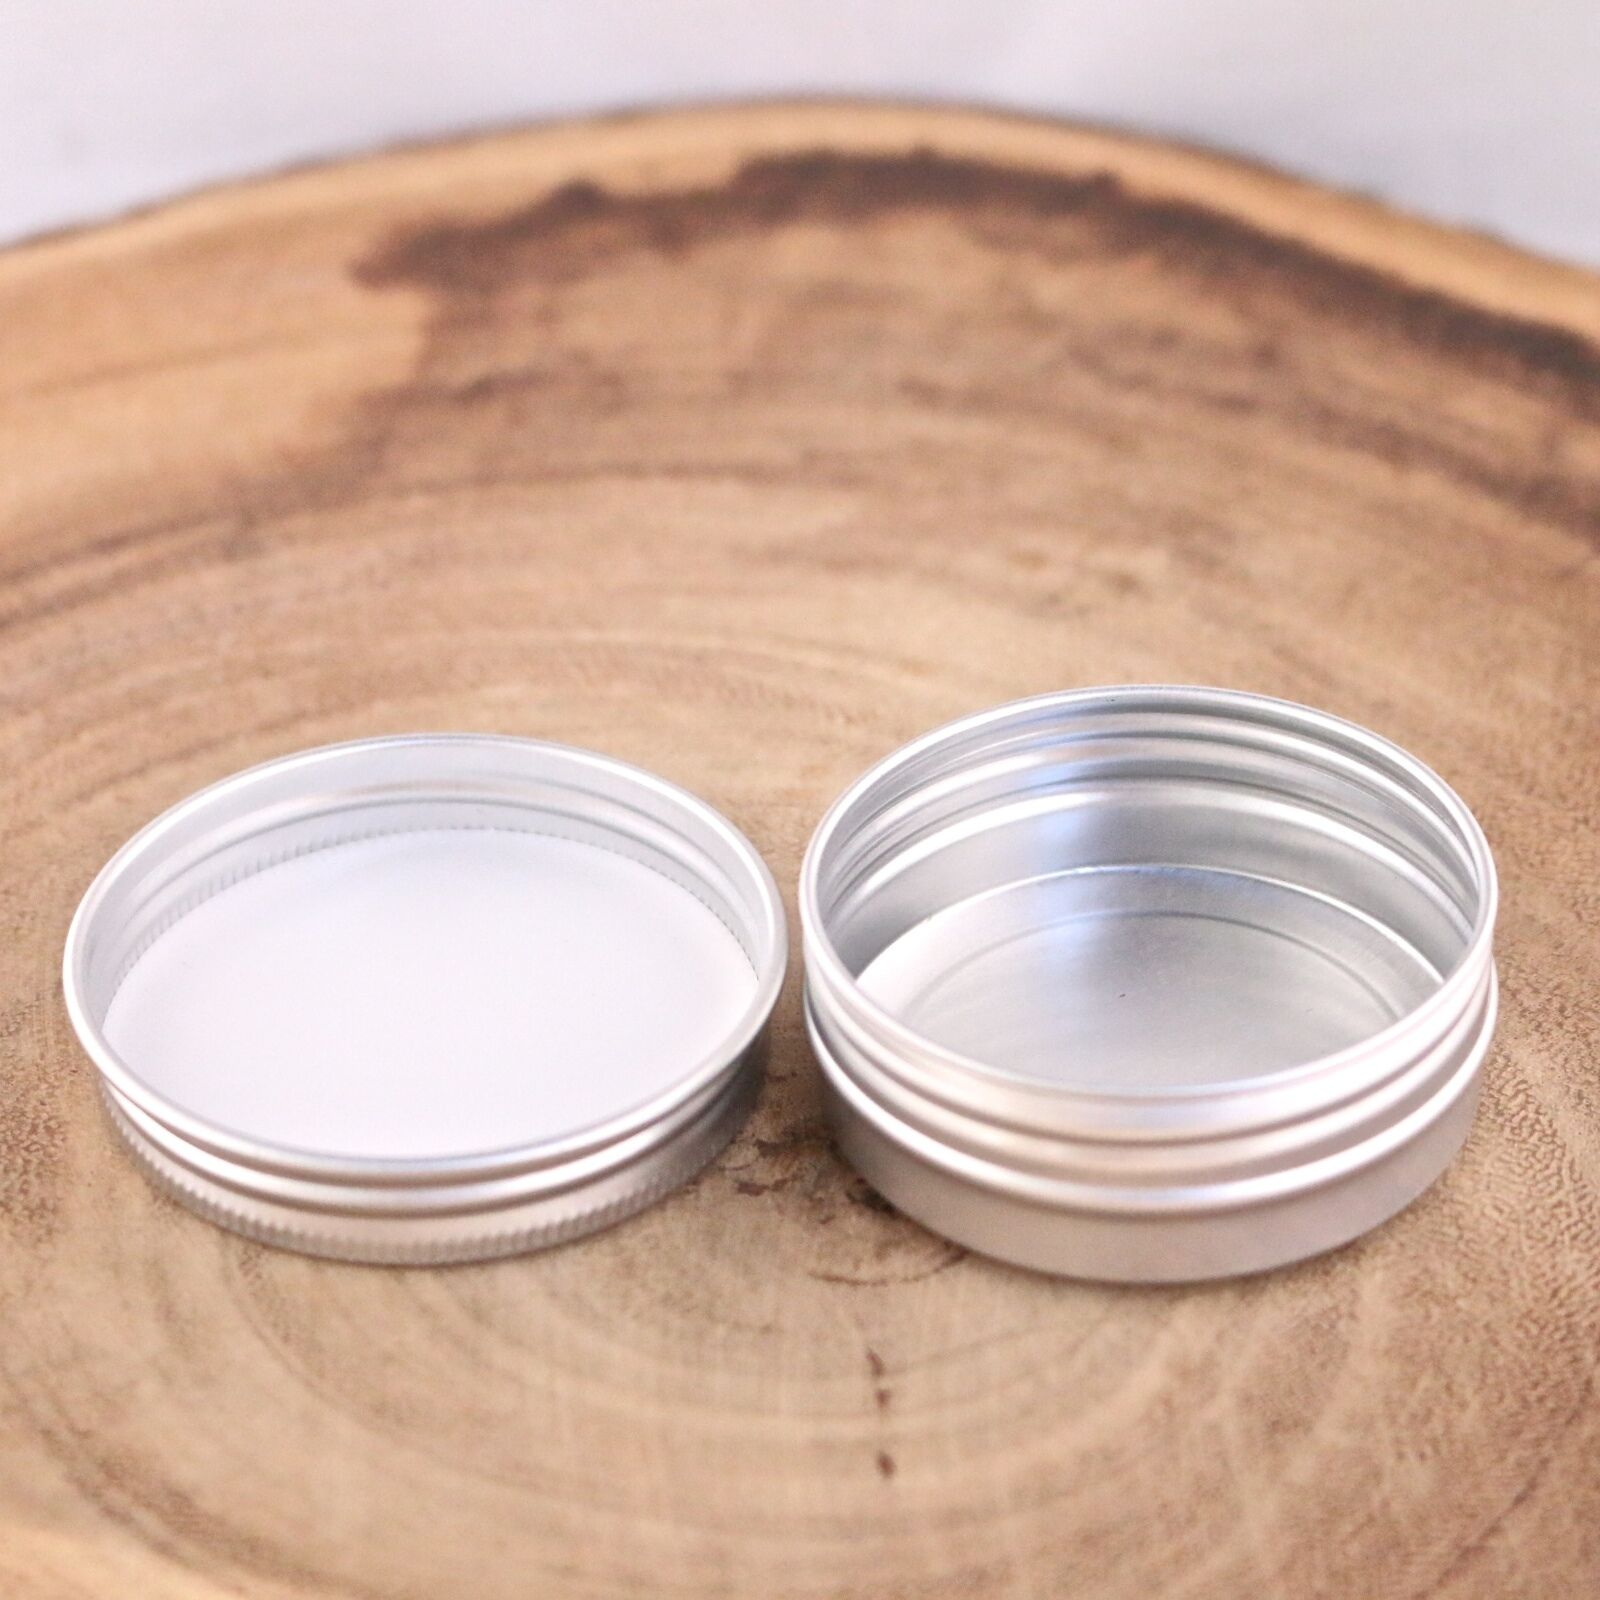 1 Oz Shallow Round Metal Tin Containers Cans for lip balm &